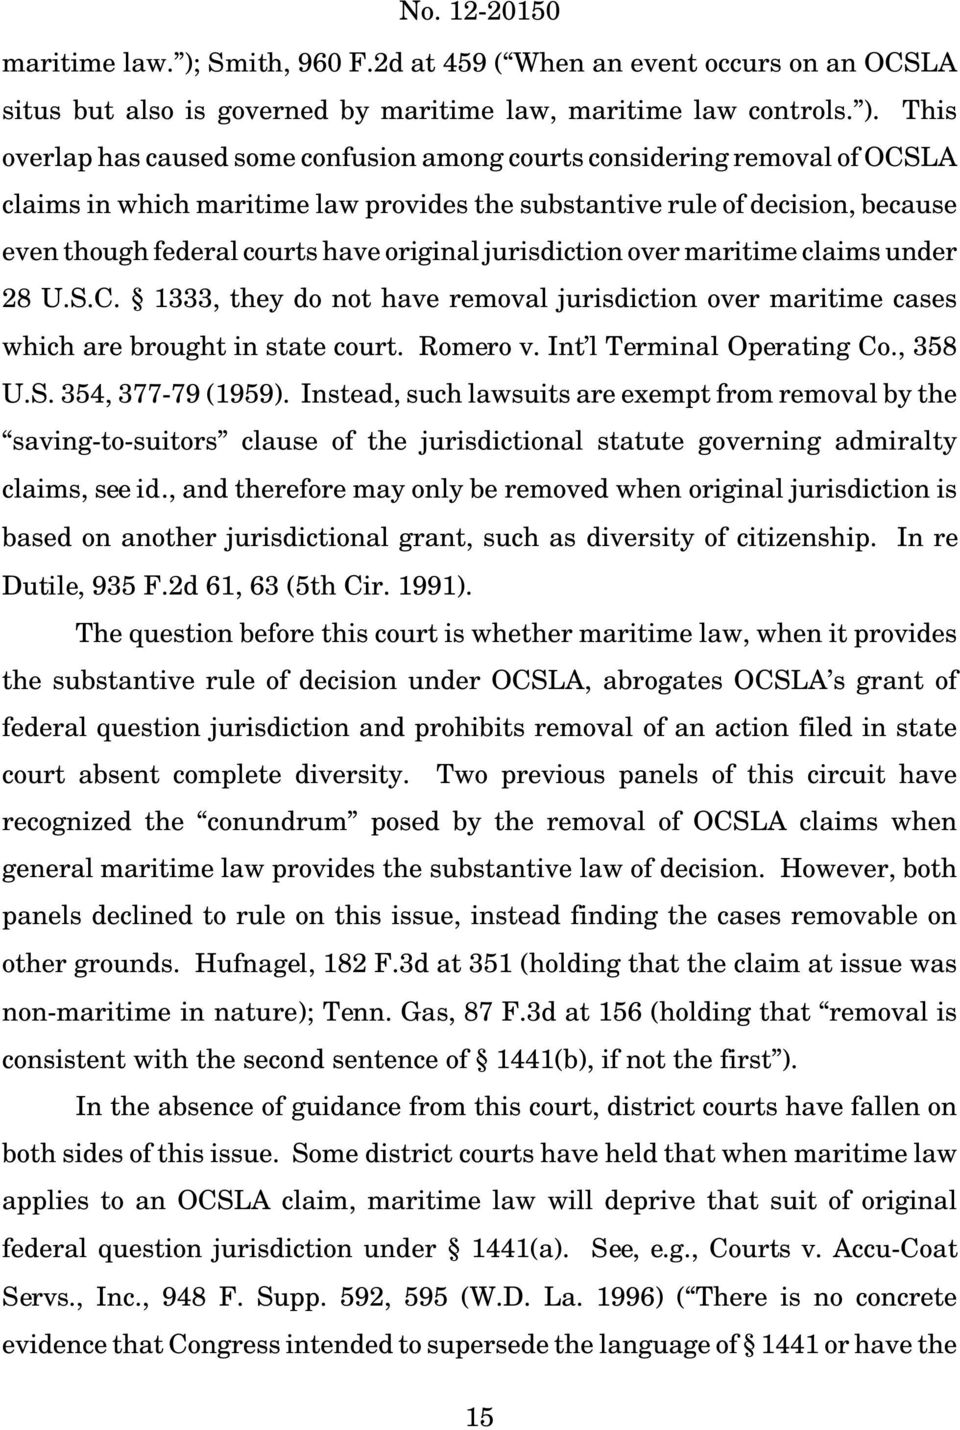 This overlap has caused some confusionamong courtsconsideringremoval of OCSLA claims in which maritime law provides the substantive rule of decision, because even though federal courts have original